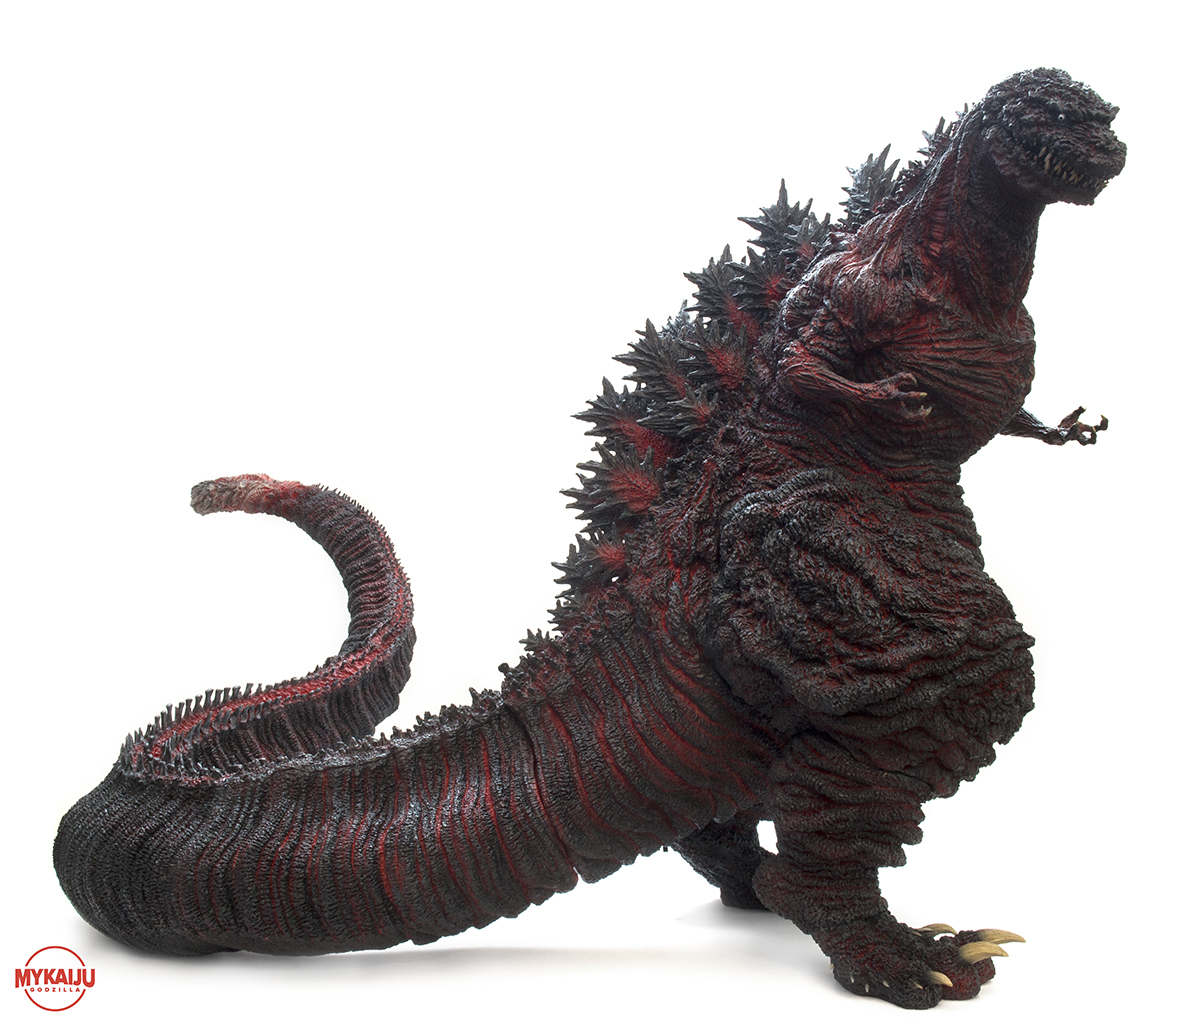 Shin Has Arrived Mykaiju Godzilla